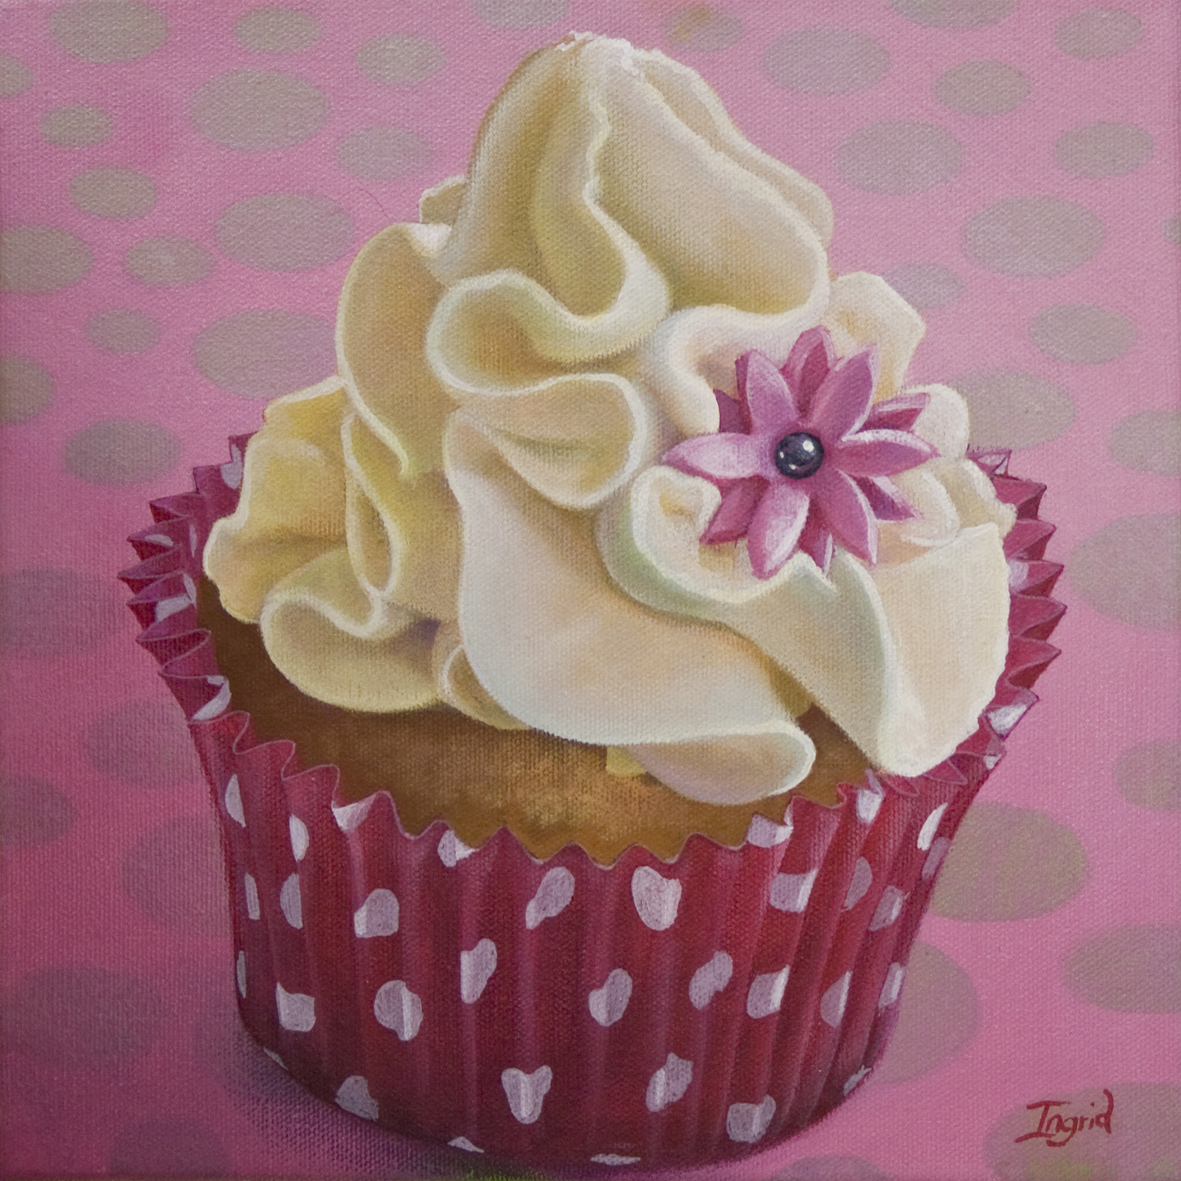 Girlie Pink – SOLD